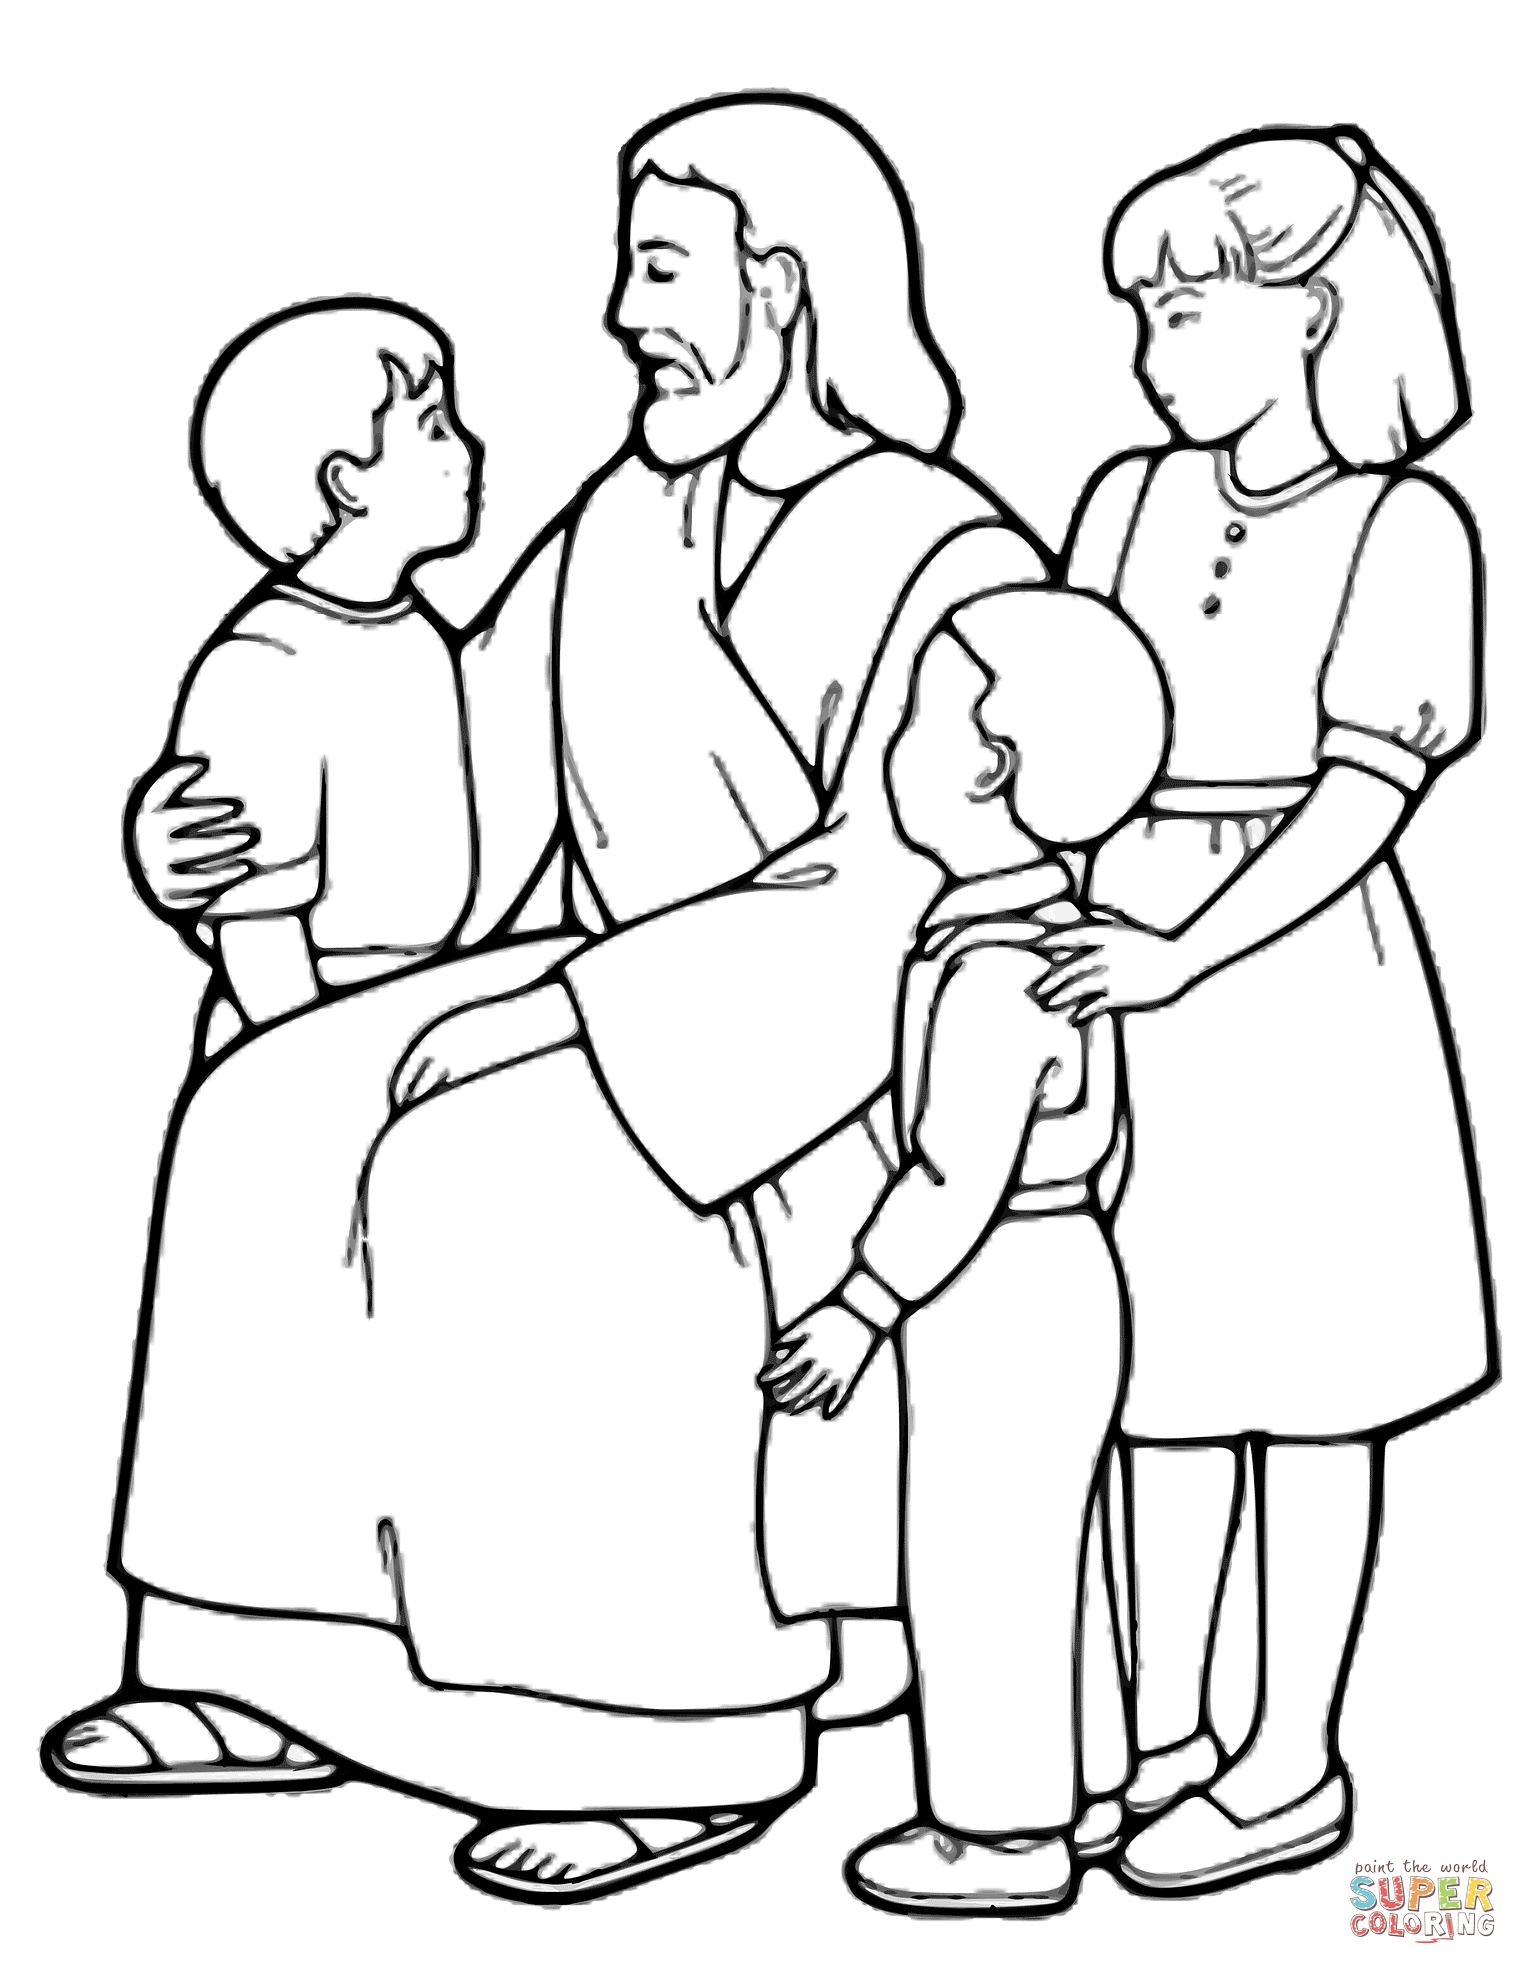 New Jesus Coloring Pages For Kids Printable